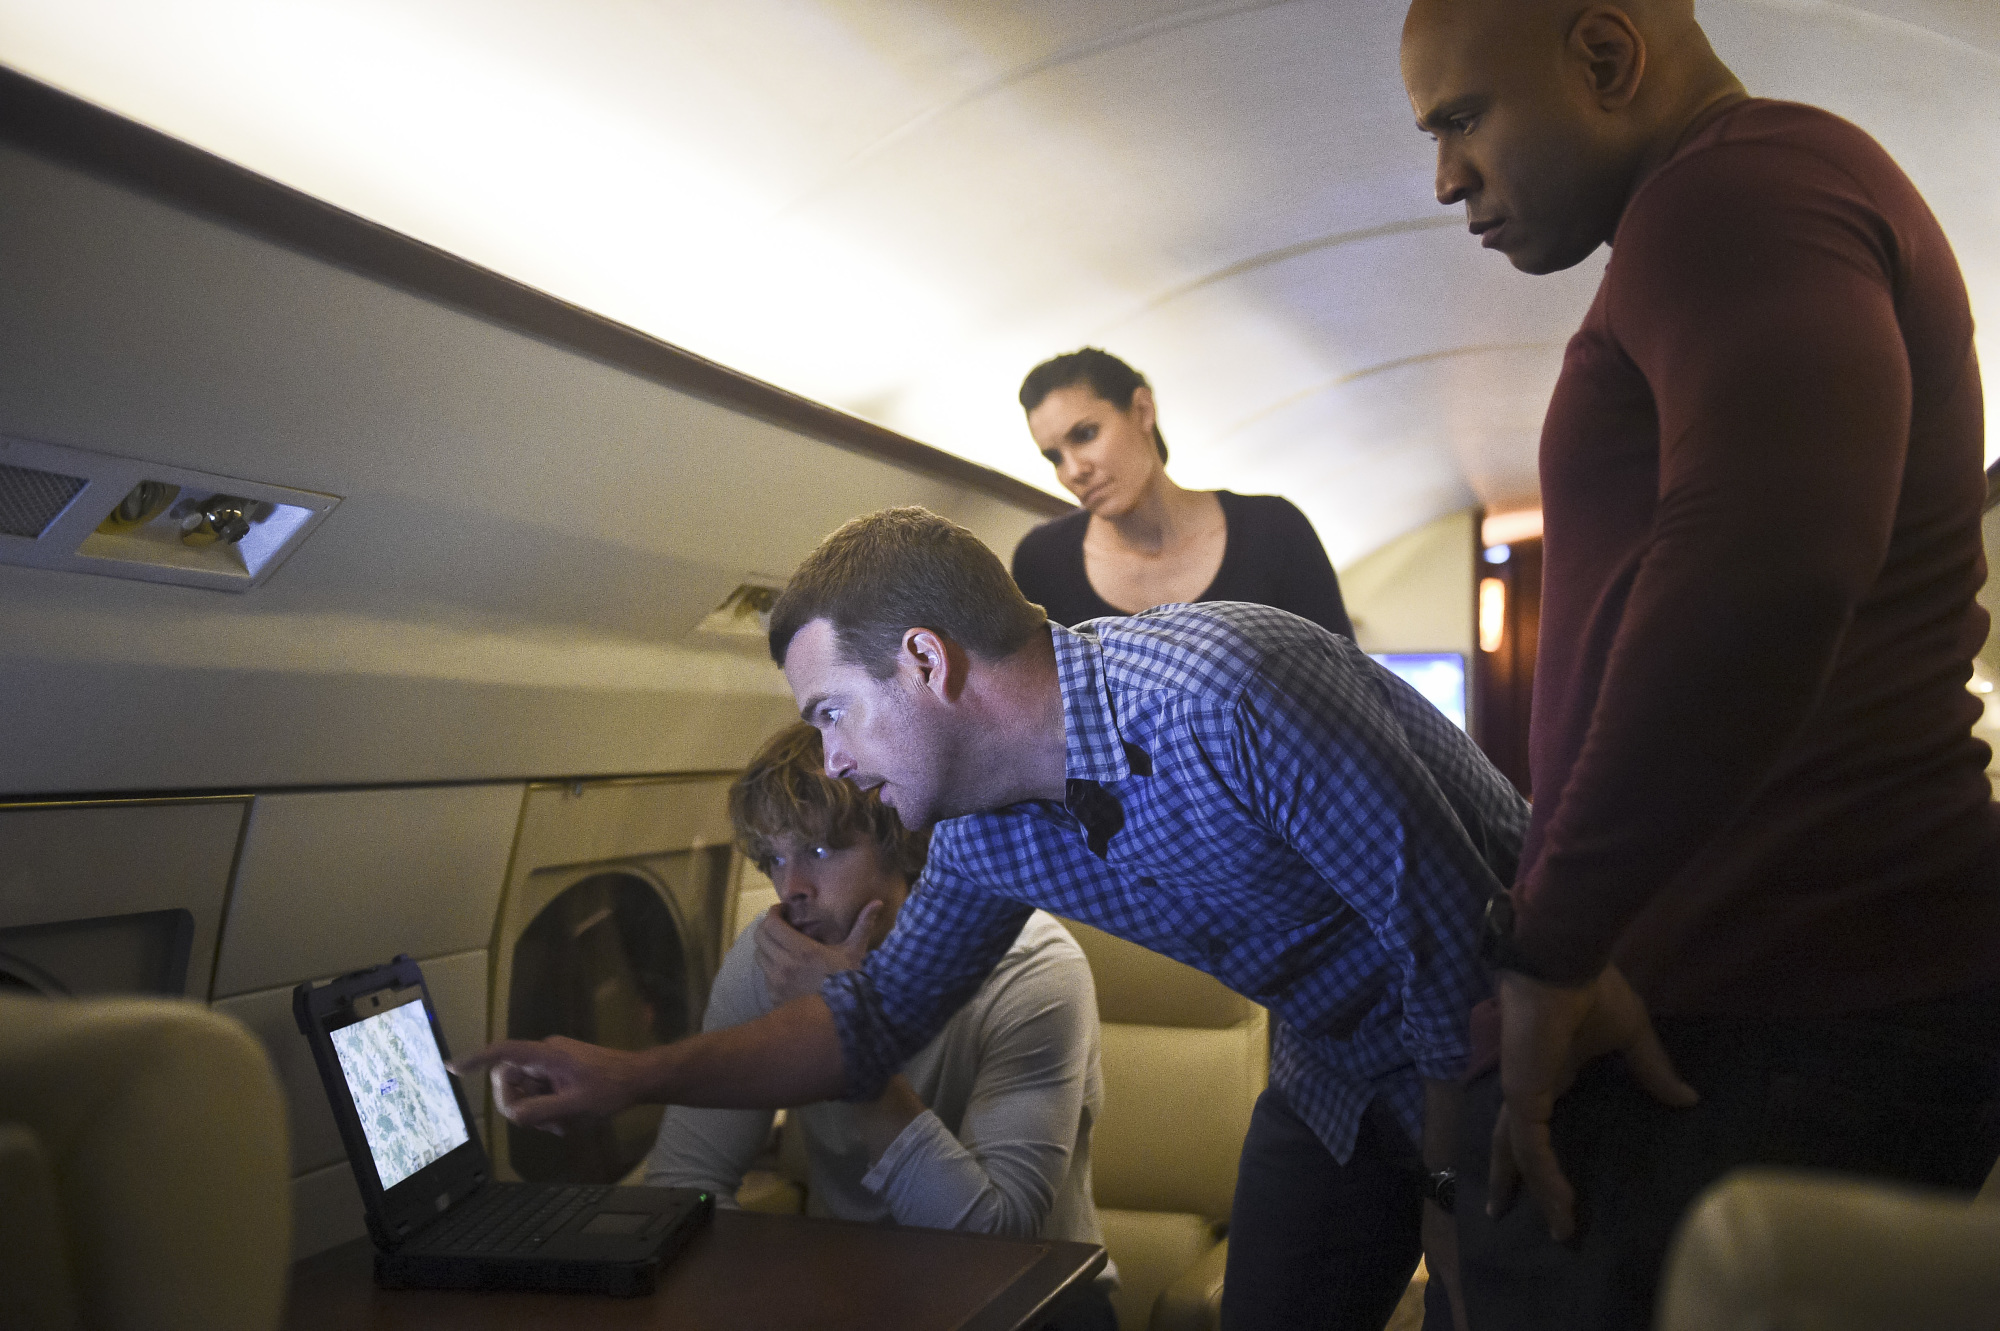 Eric Christian Olsen as LAPD Liaison Marty Deeks, Chris O'Donnell as Special Agent G. Callen, Daniela Ruah as Special Agent Kensi Blye, and LL COOL J as Special Agent Sam Hanna